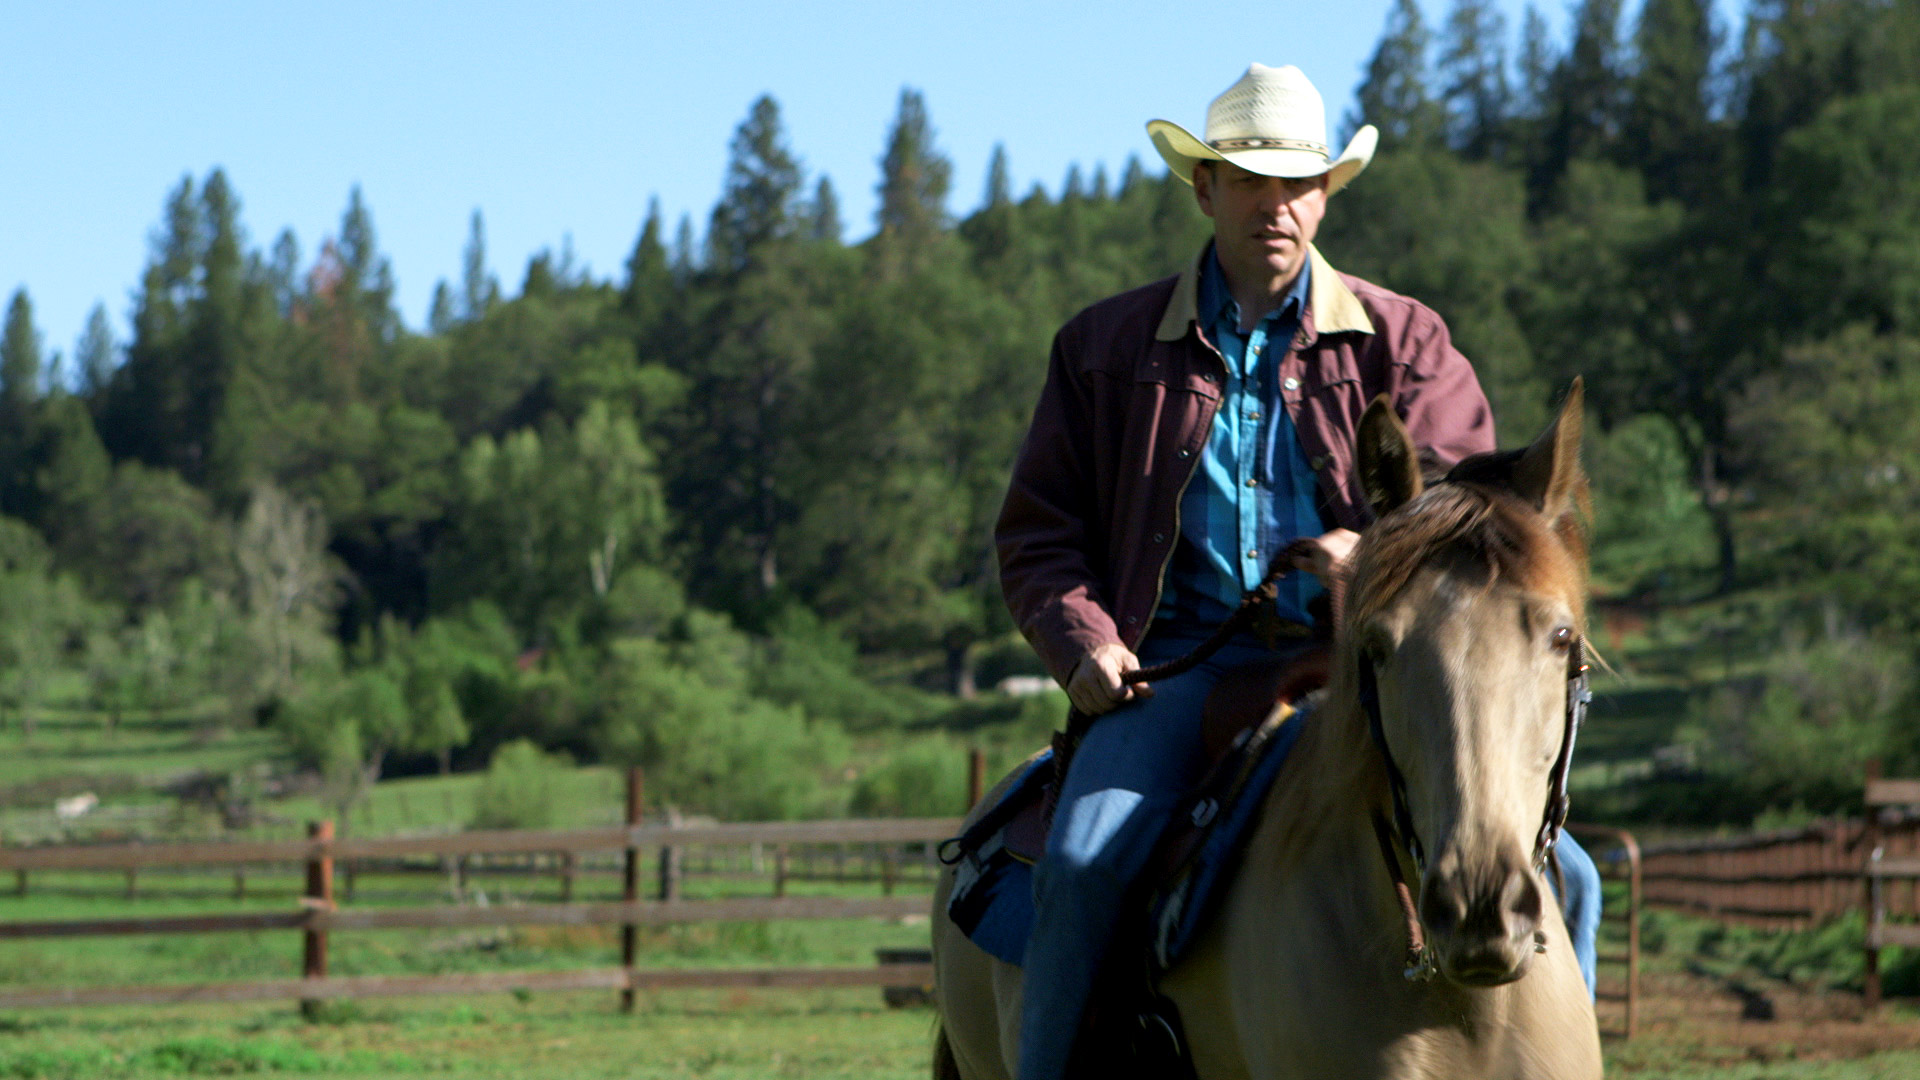 Mark_Meckler_Riding_Horse_Grass_Valley_AmericanCreed_72dpi.jpg